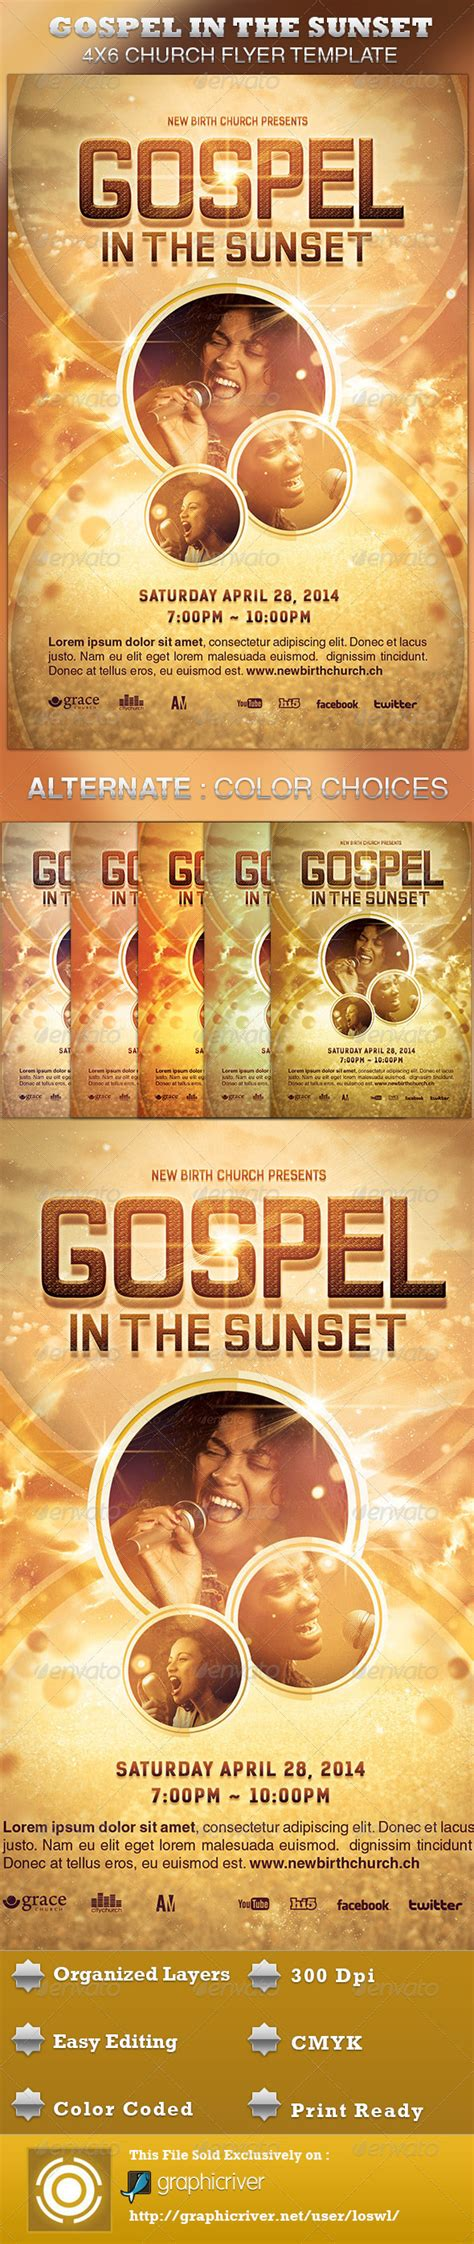 Gospel Church Flyer Template Gospel In The Sunset Church Flyer Template By Loswl Graphicriver